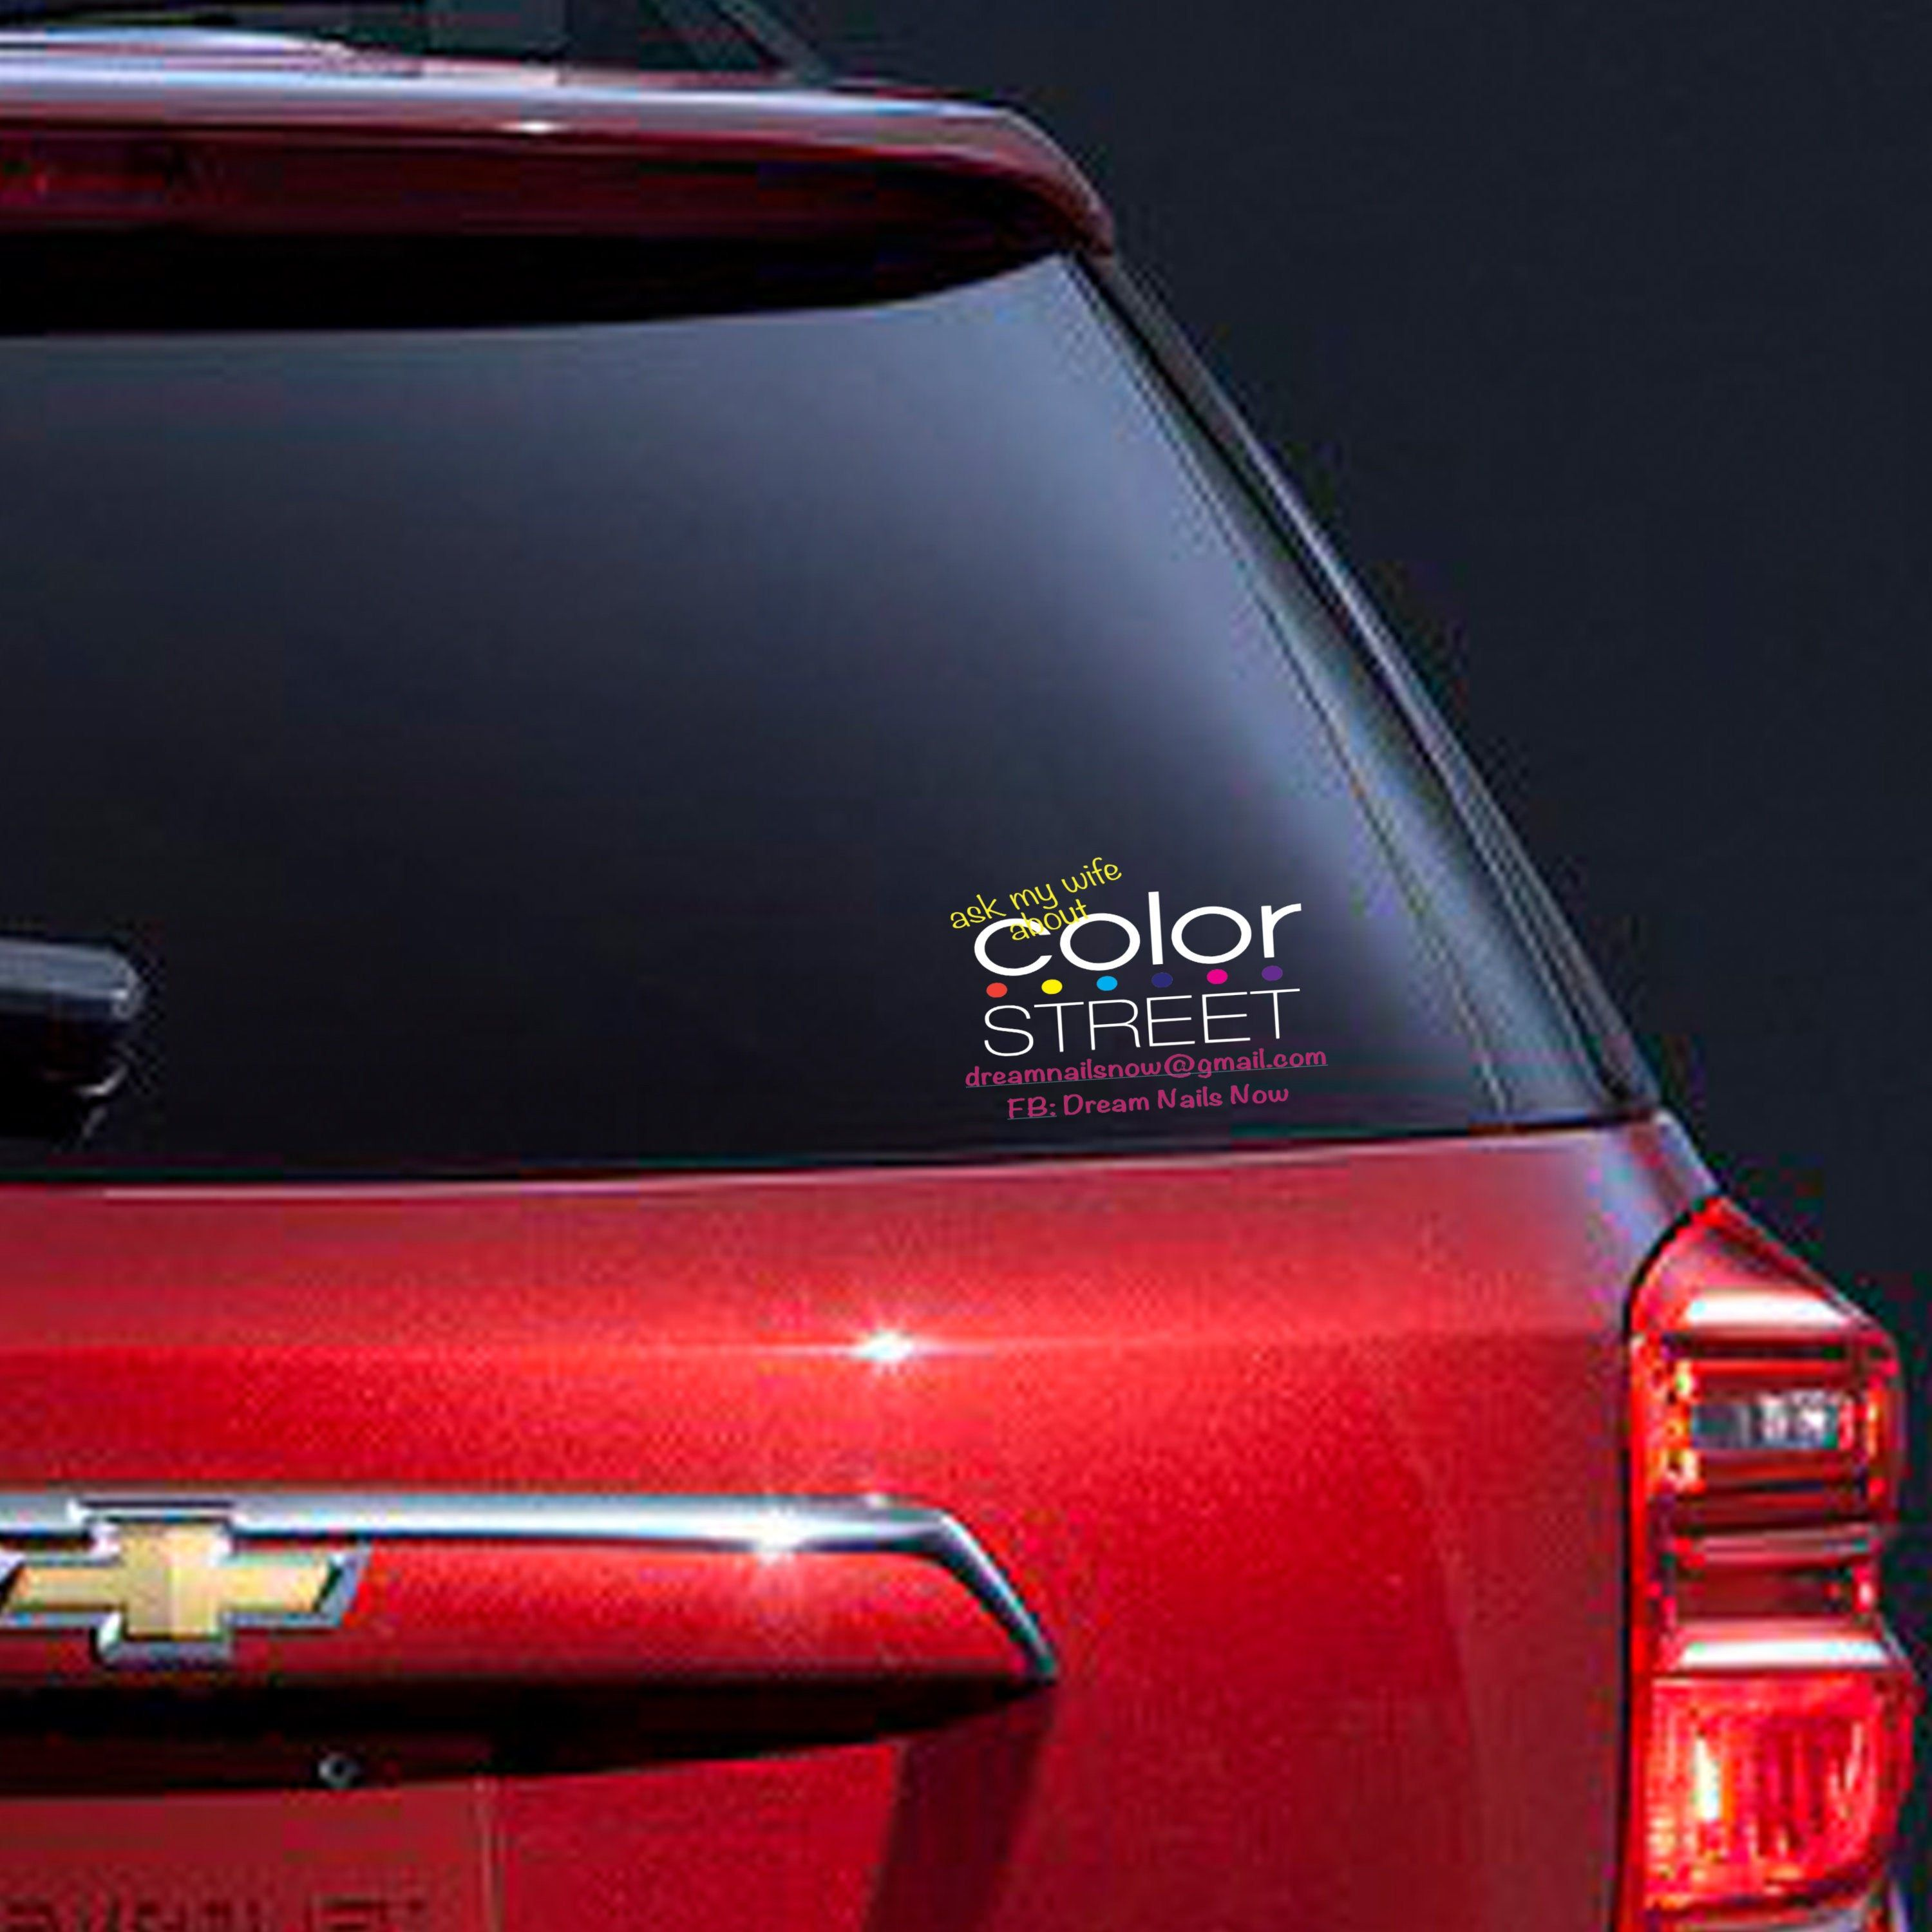 Ask my wife about color street direct sales decal small